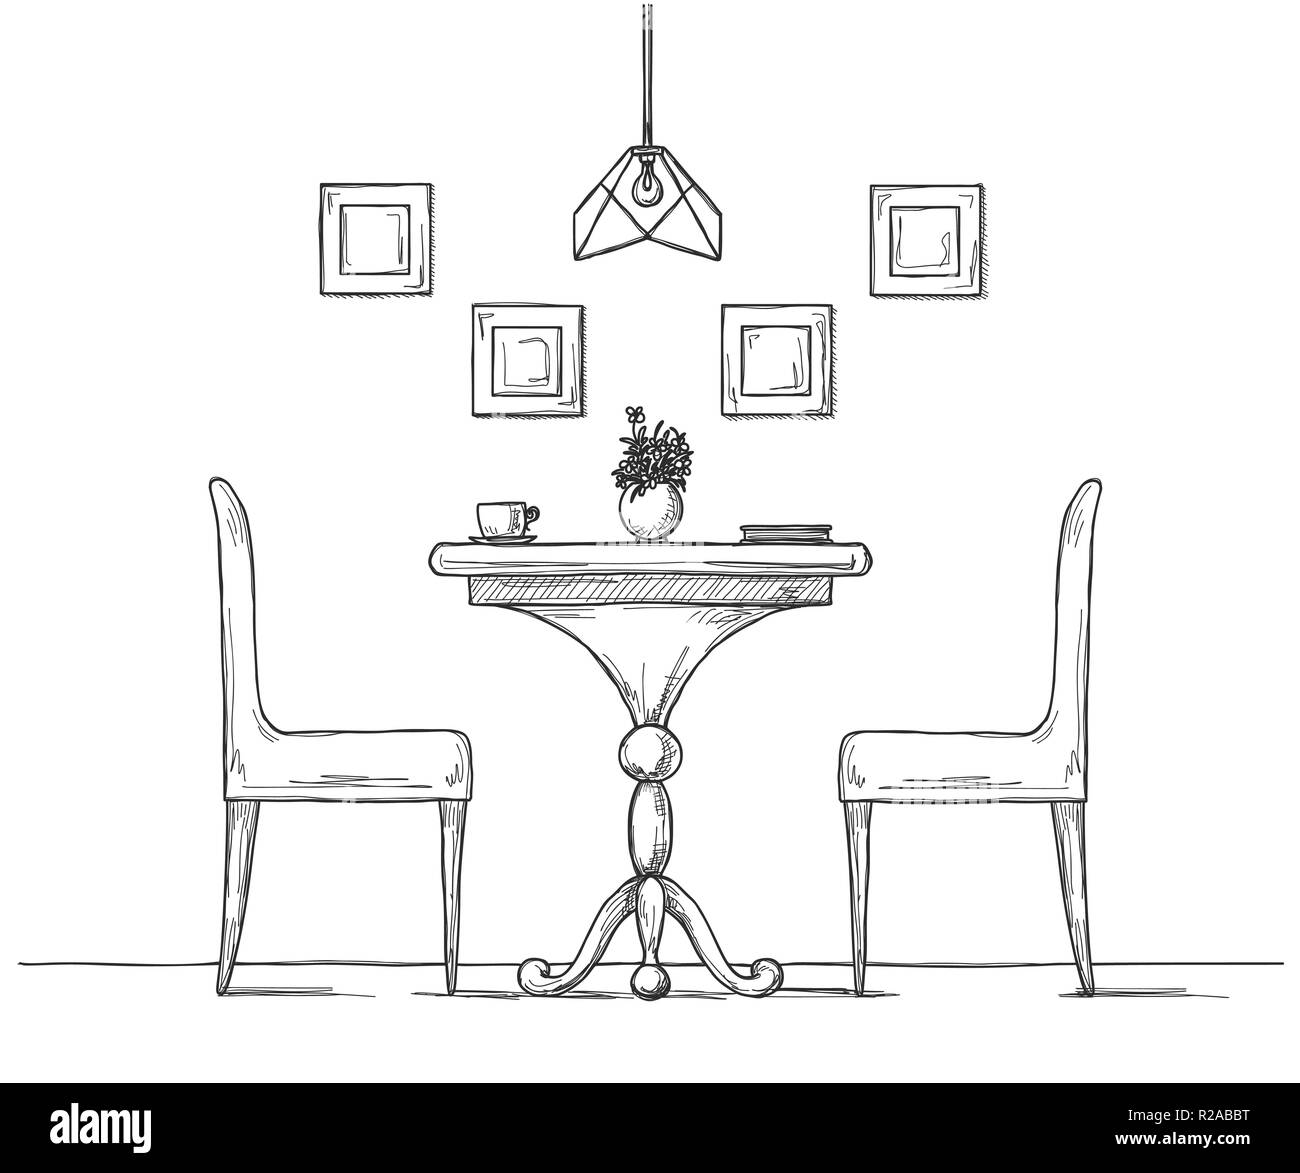 Part Of The Dining Room Round Table And Chairs On The Table Vase Of Flowers Hand Drawn Sketch Vector Illustration Stock Vector Image Art Alamy